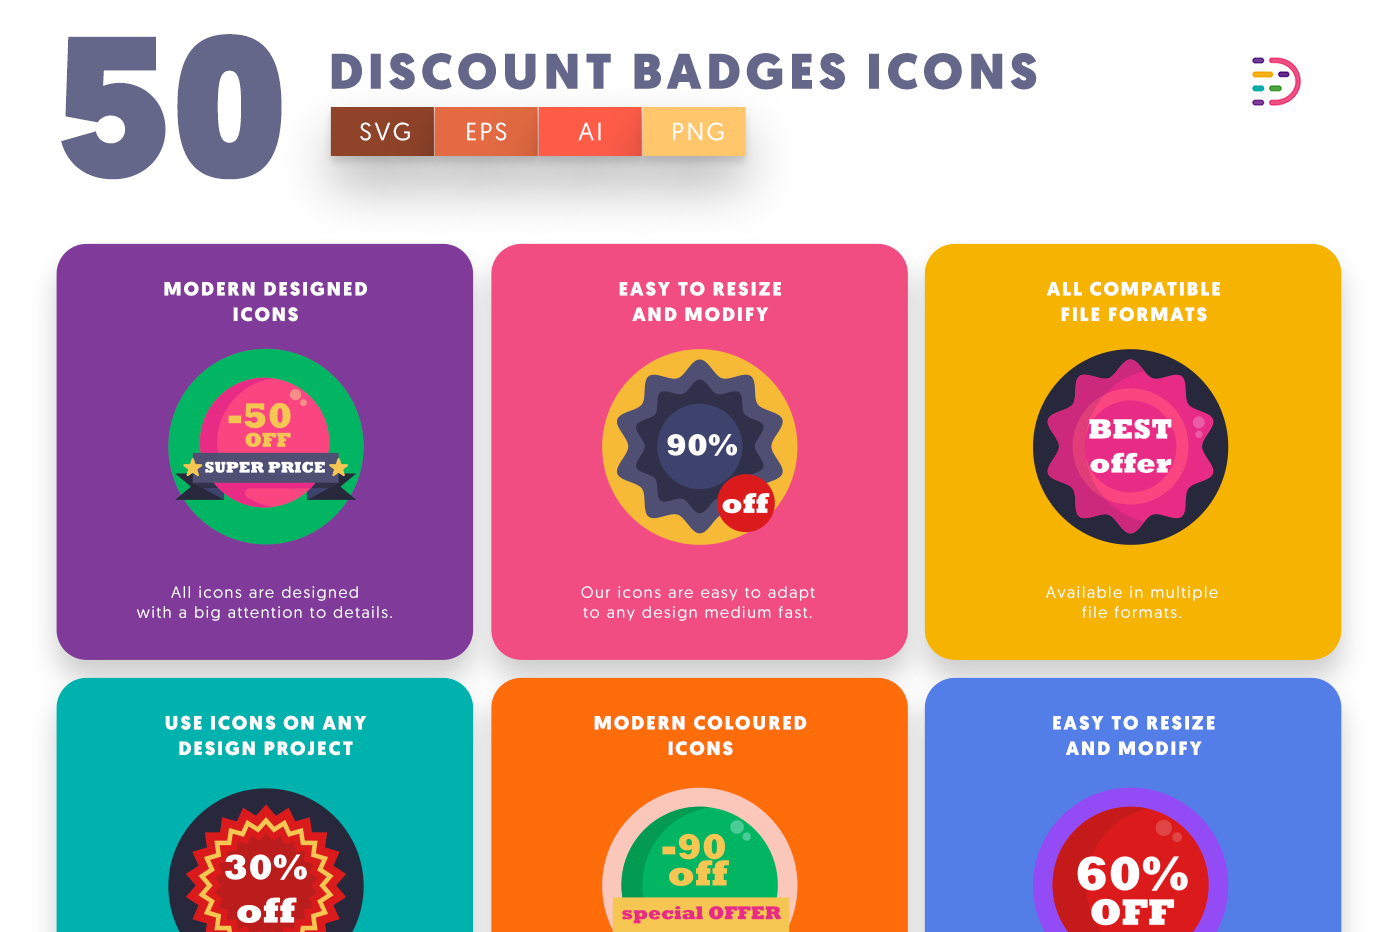 50 Discount Badges Icons with colored backgrounds